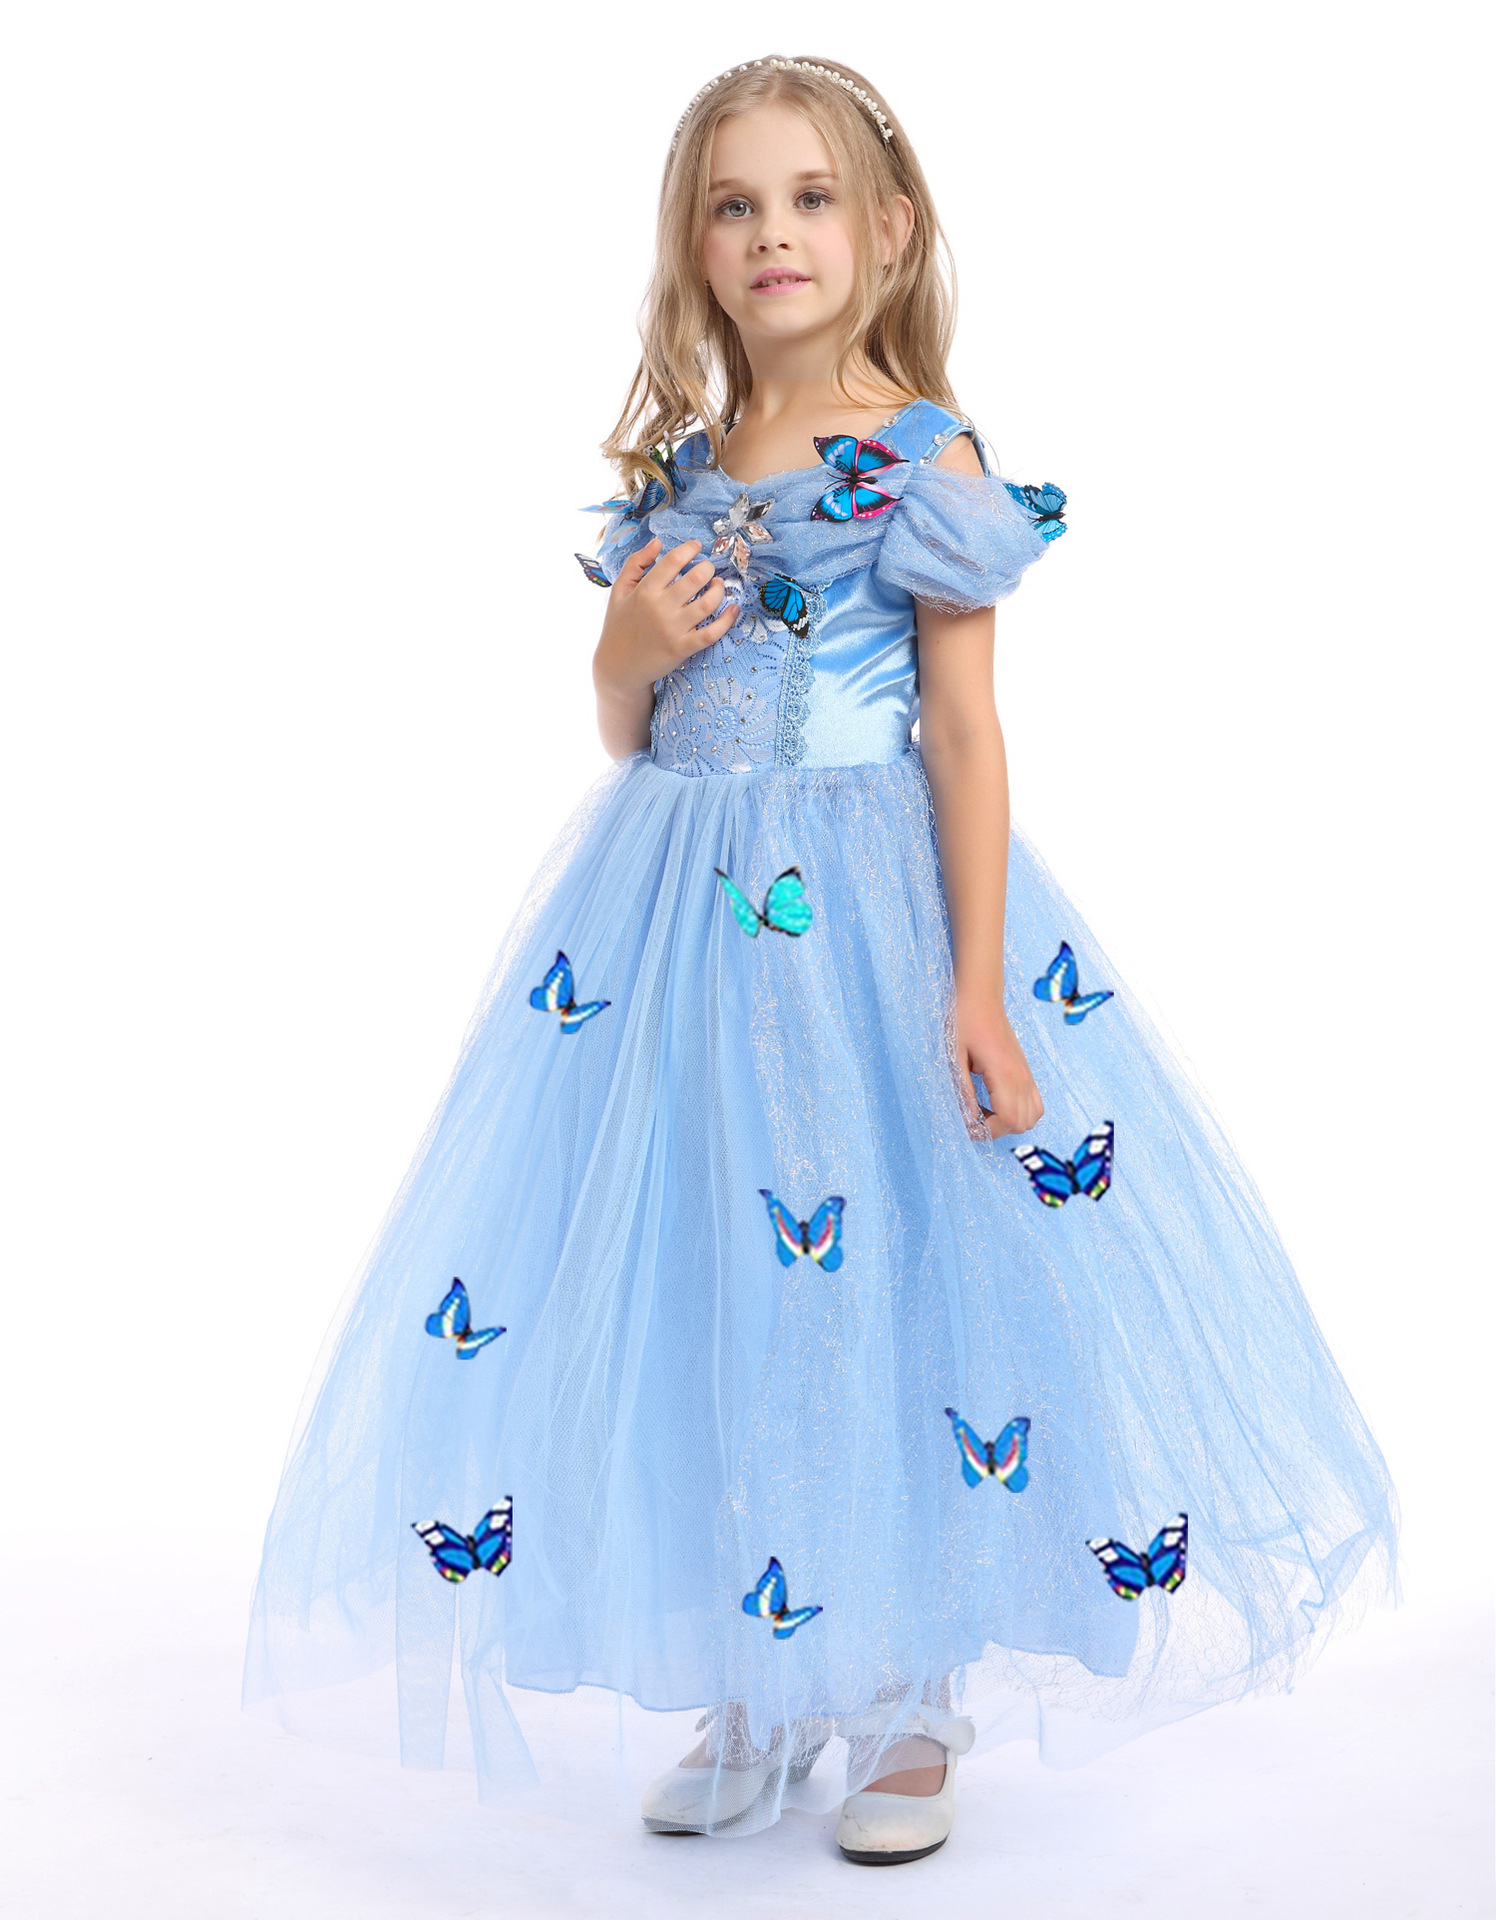 0421a9522 2019 Snowflake Diamond Dress 2018 Fancy Costumes For Kids Blue Gown ...